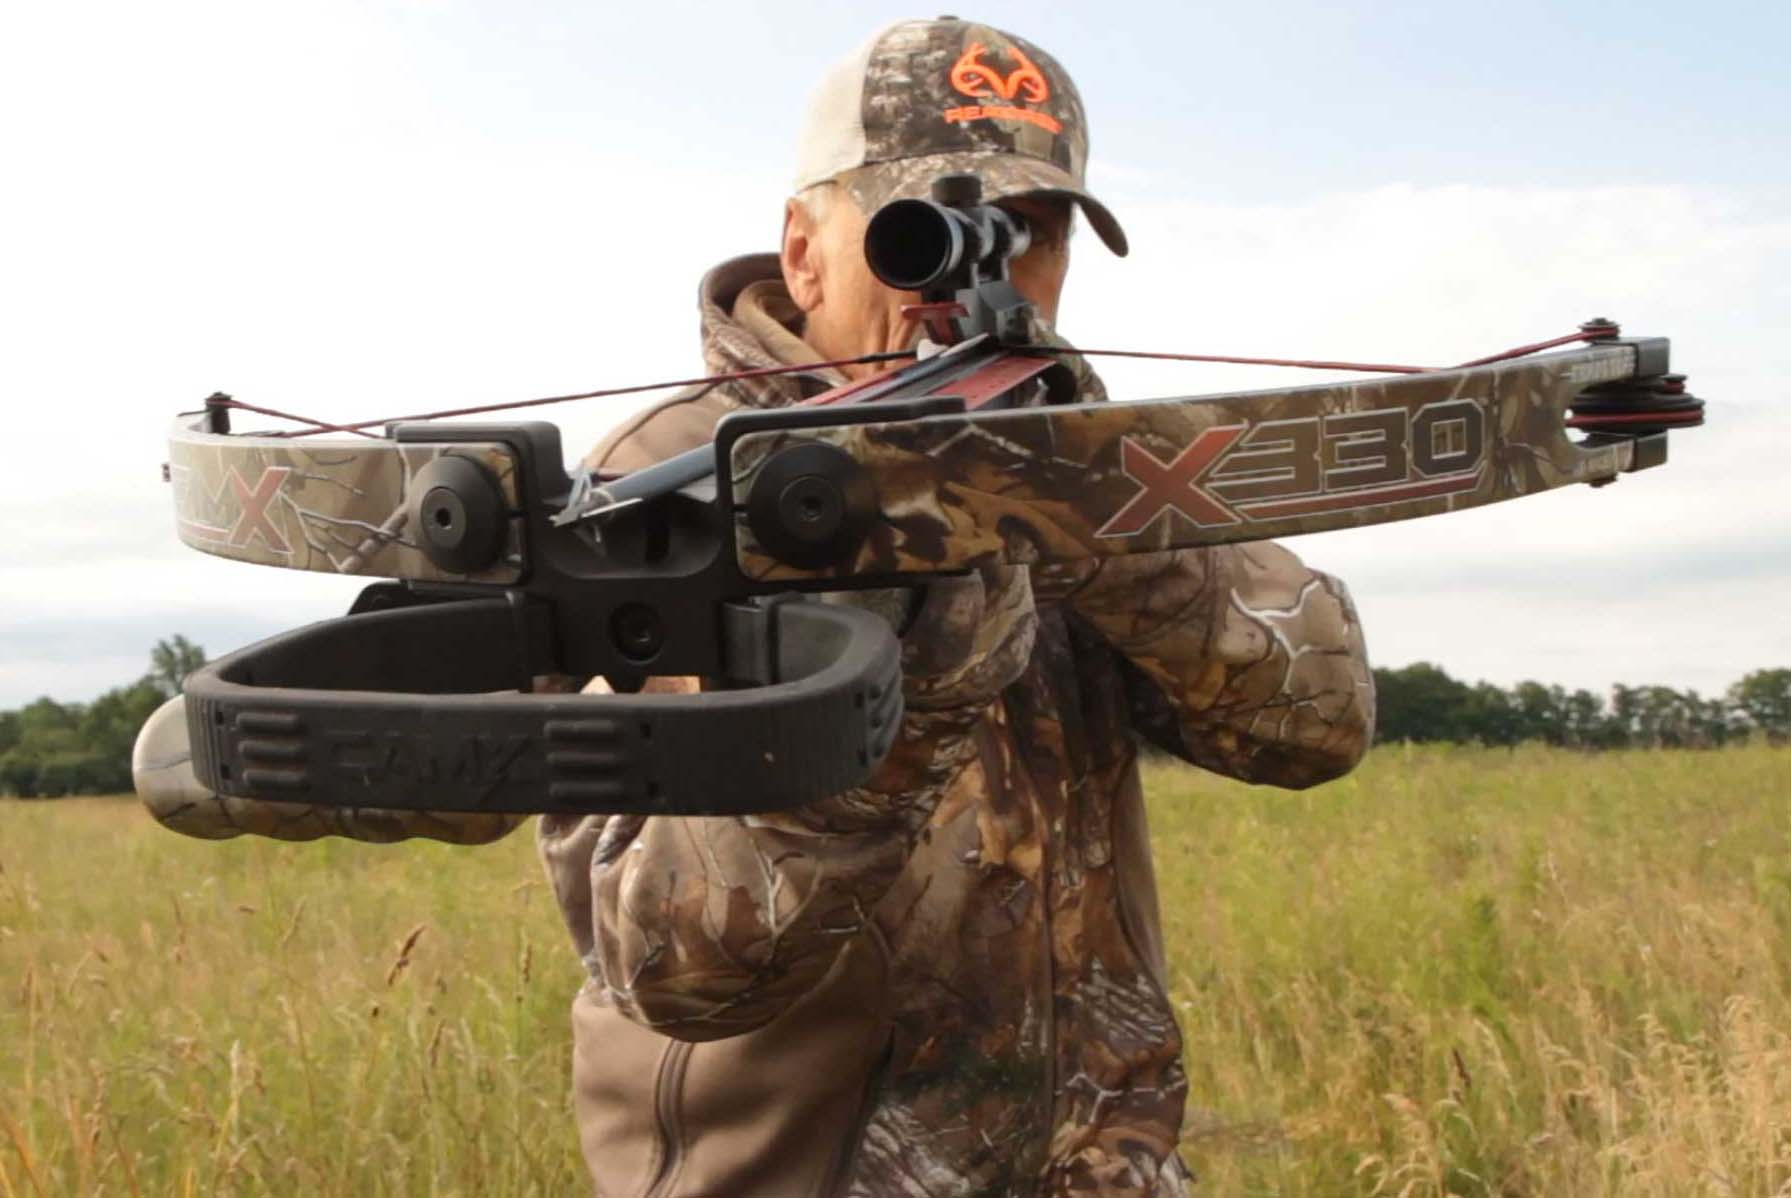 CAMX Crossbows - X330 Built like not other